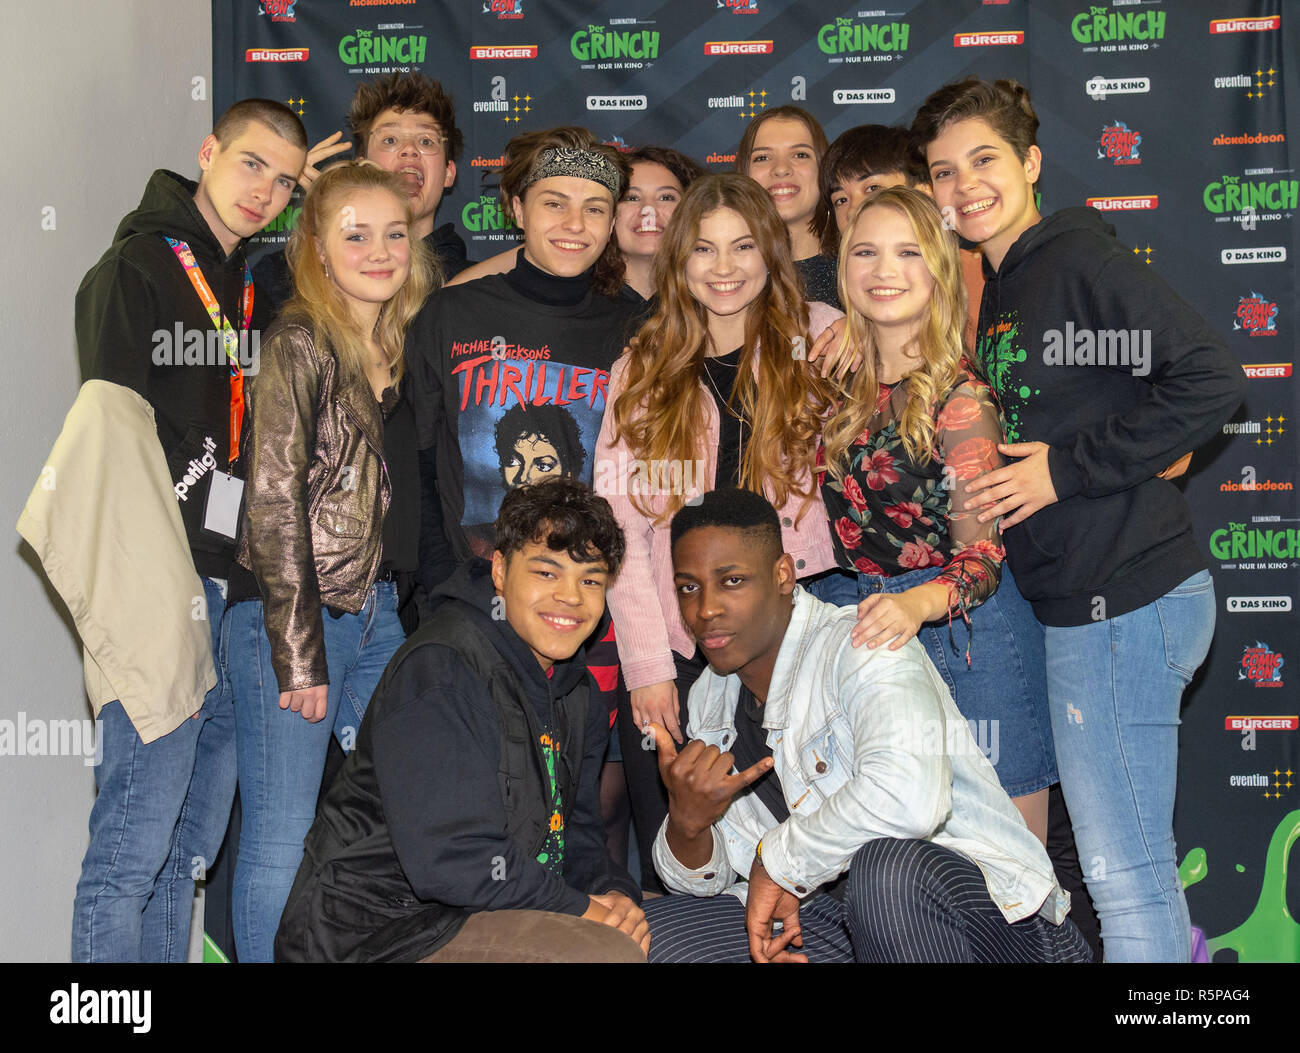 DORTMUND, Germany - December 1st 2018: Spotlight Cast at Nickelodeon Slimefest 2018, the first Slimefest in germany Credit: Markus Wissmann/Alamy Live News Stock Photo